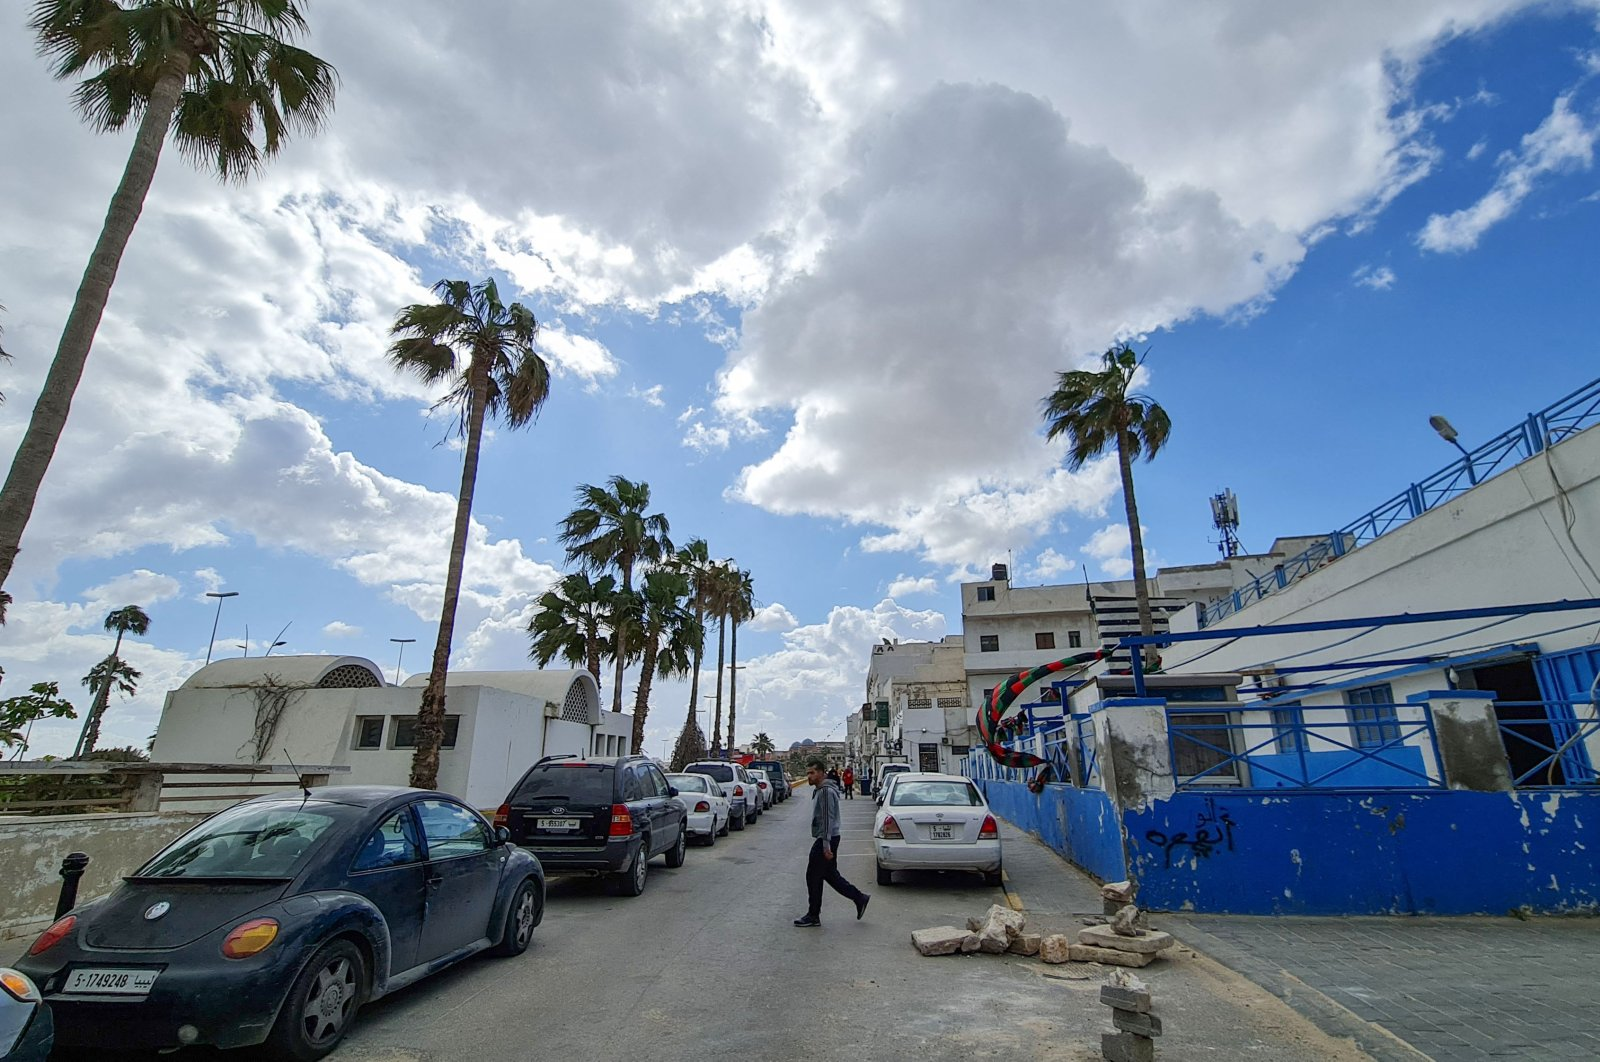 A man crosses a street in the Libyan capital Tripoli's old city, amid ongoing infrastructure rehabilitation work, March 23, 2021. (AFP Photo)